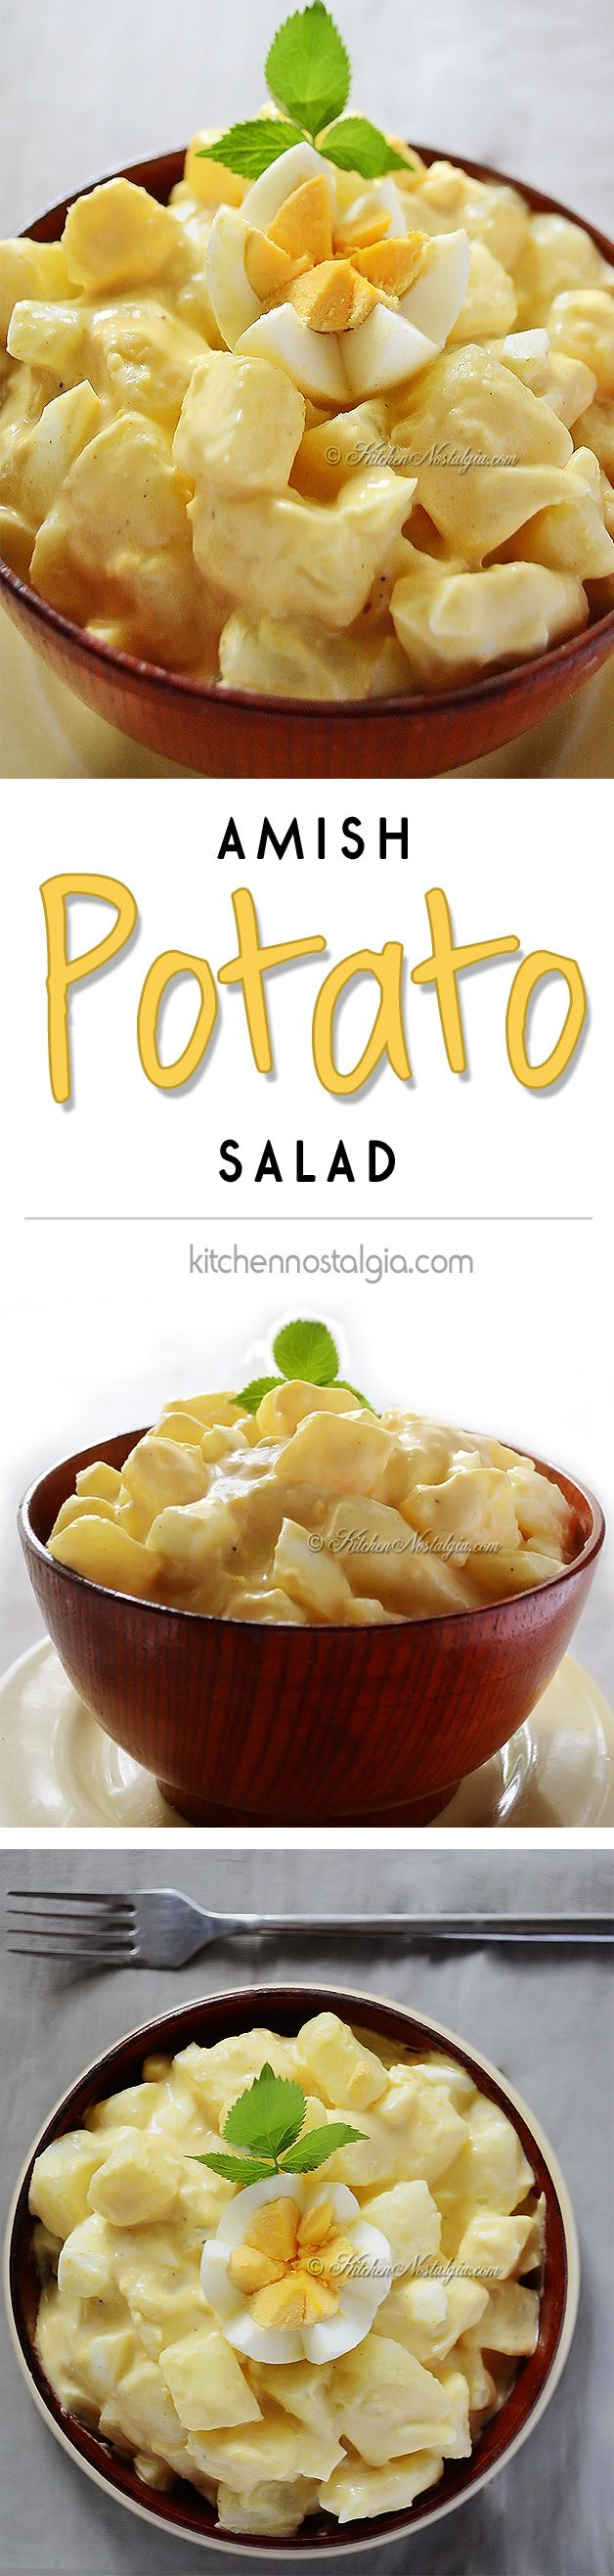 Amish Potato Salad Recipe - goes with practically anything, from picnics to barbecue to lunch to dinner - kitchennostalgia.com